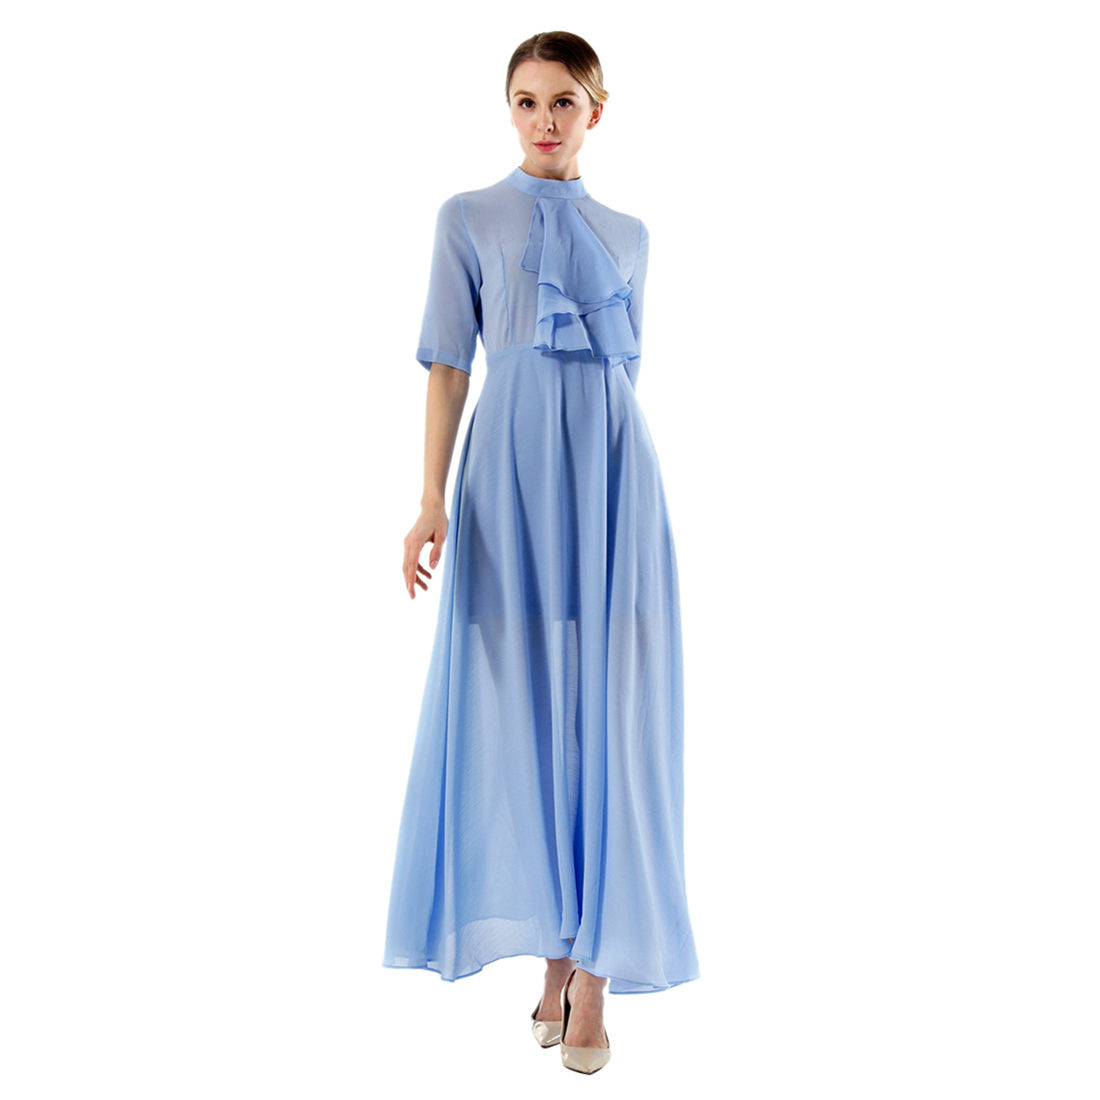 TFGS Original Design Spring Autumn Women High End Chiffon Fairy Dresses Dress Summer Fashion Office Ladies